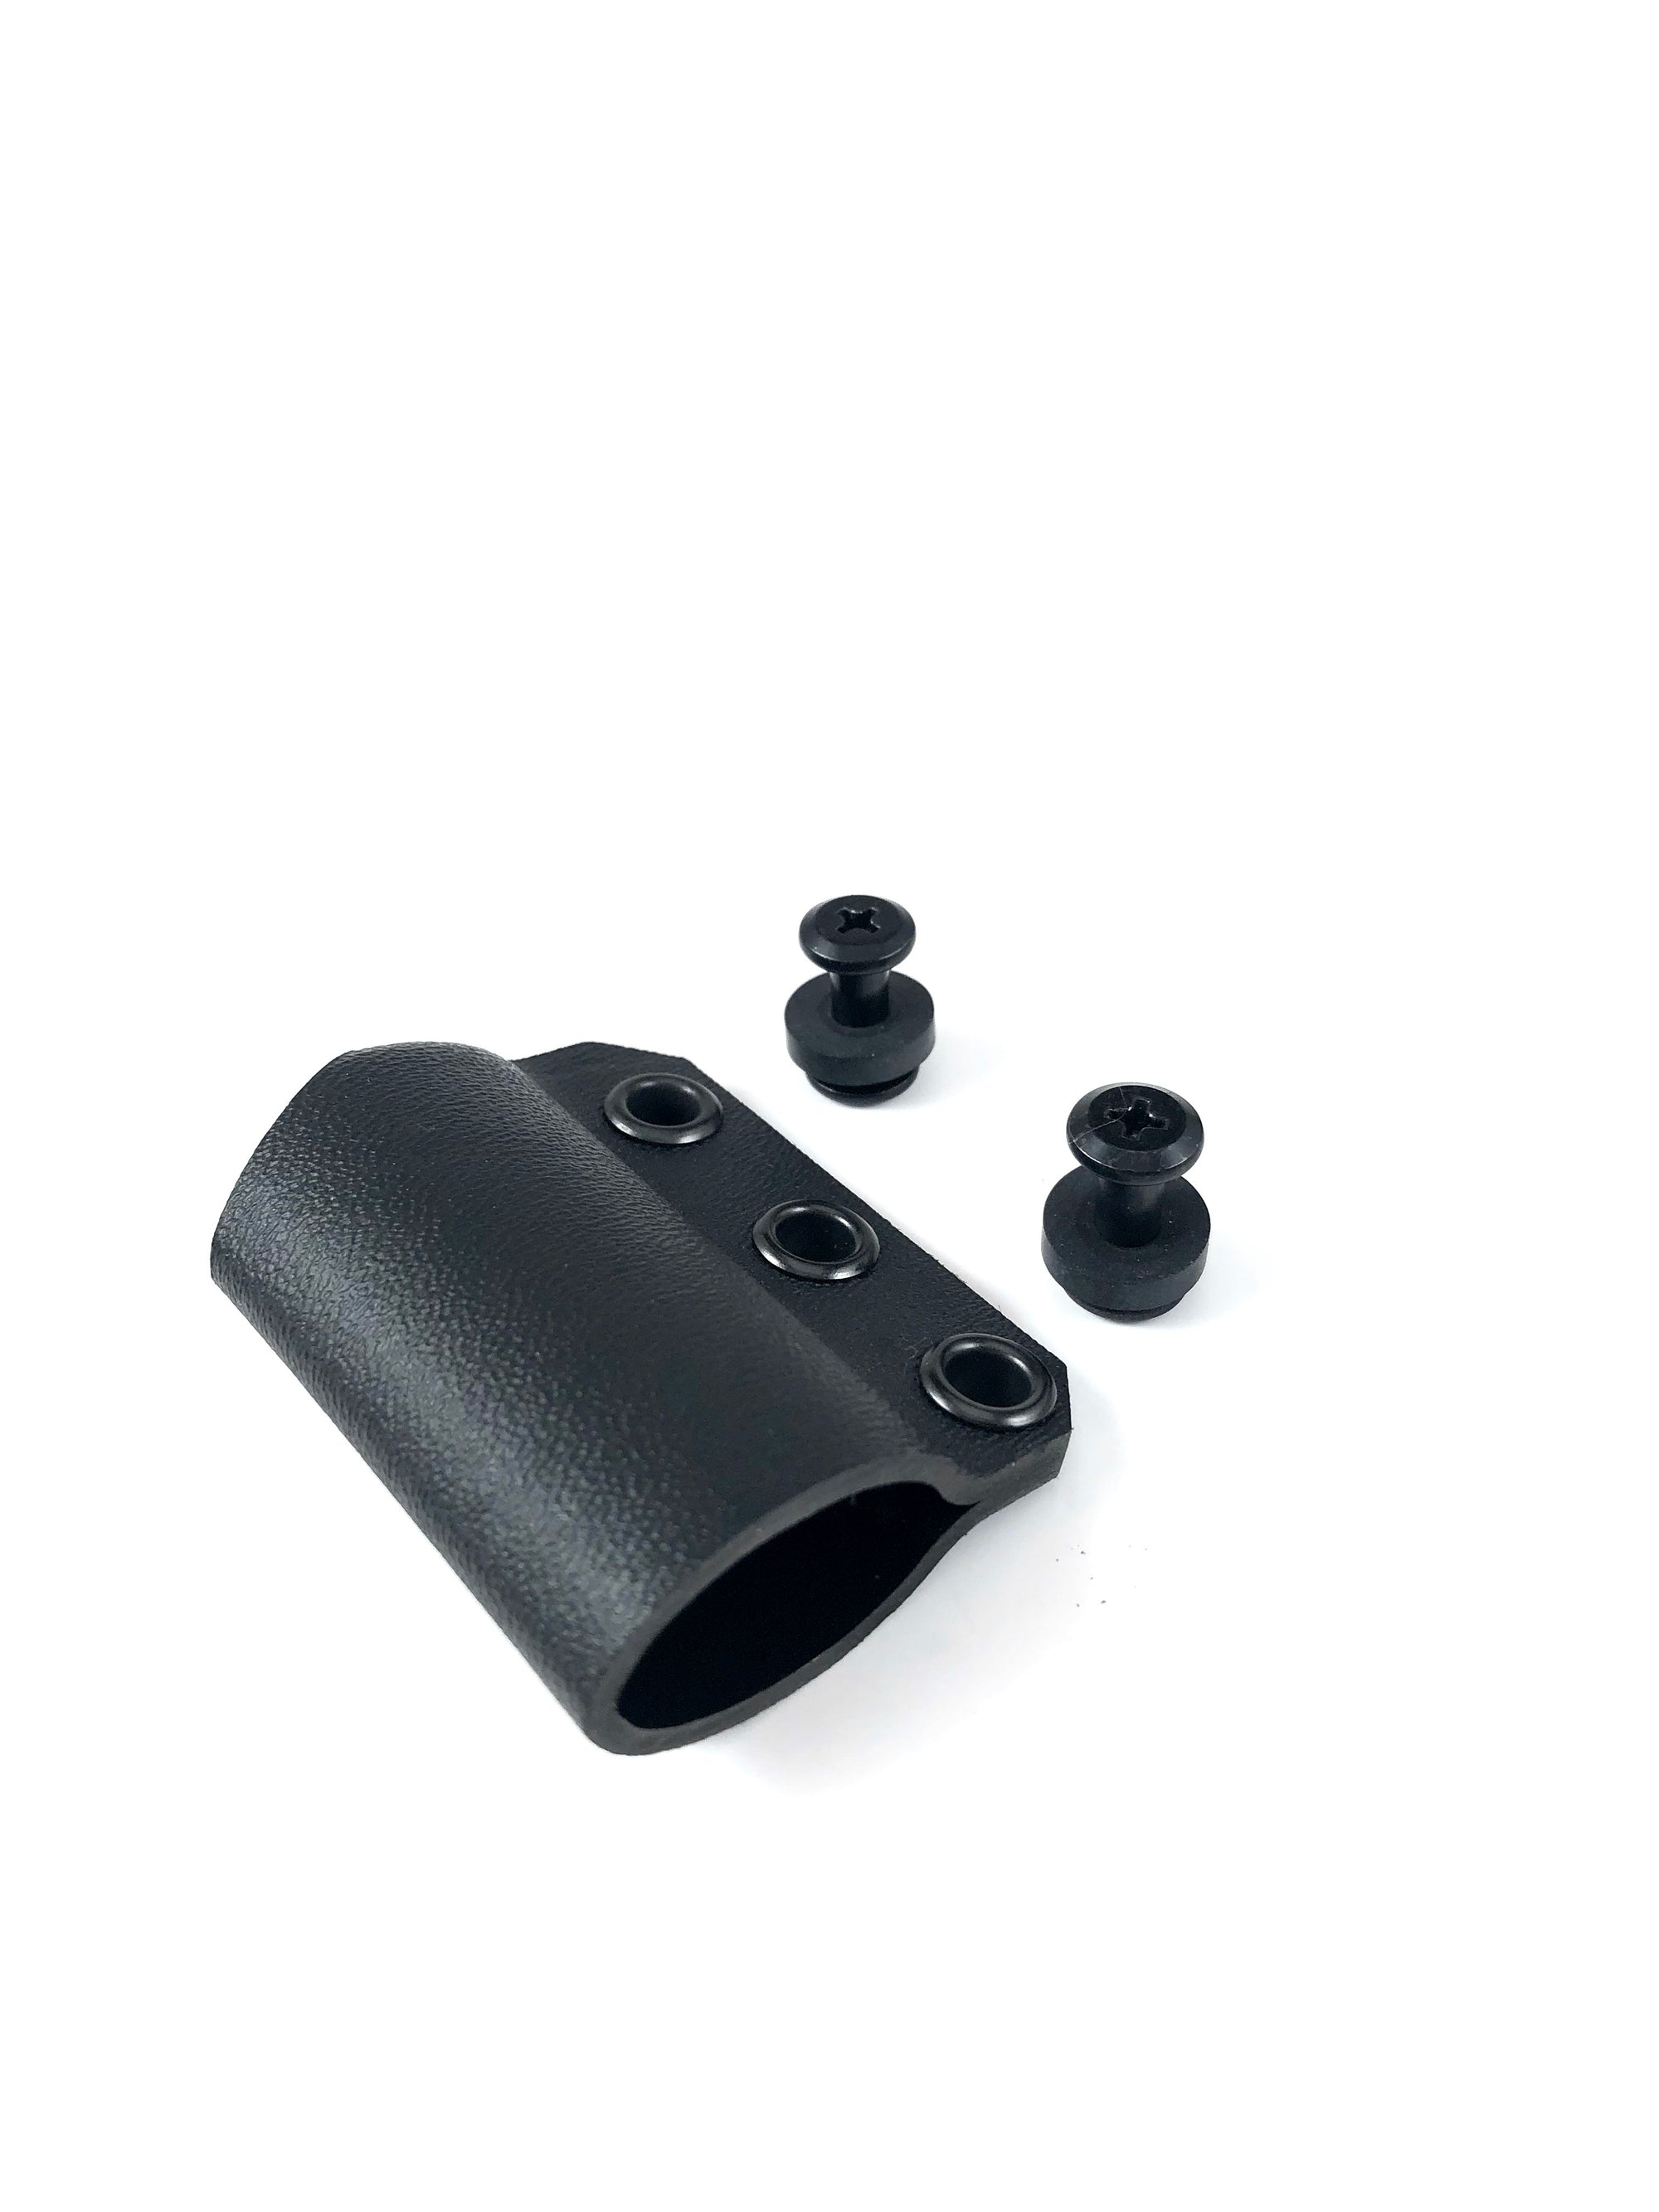 Kydex Lighter Holder (with hardware)